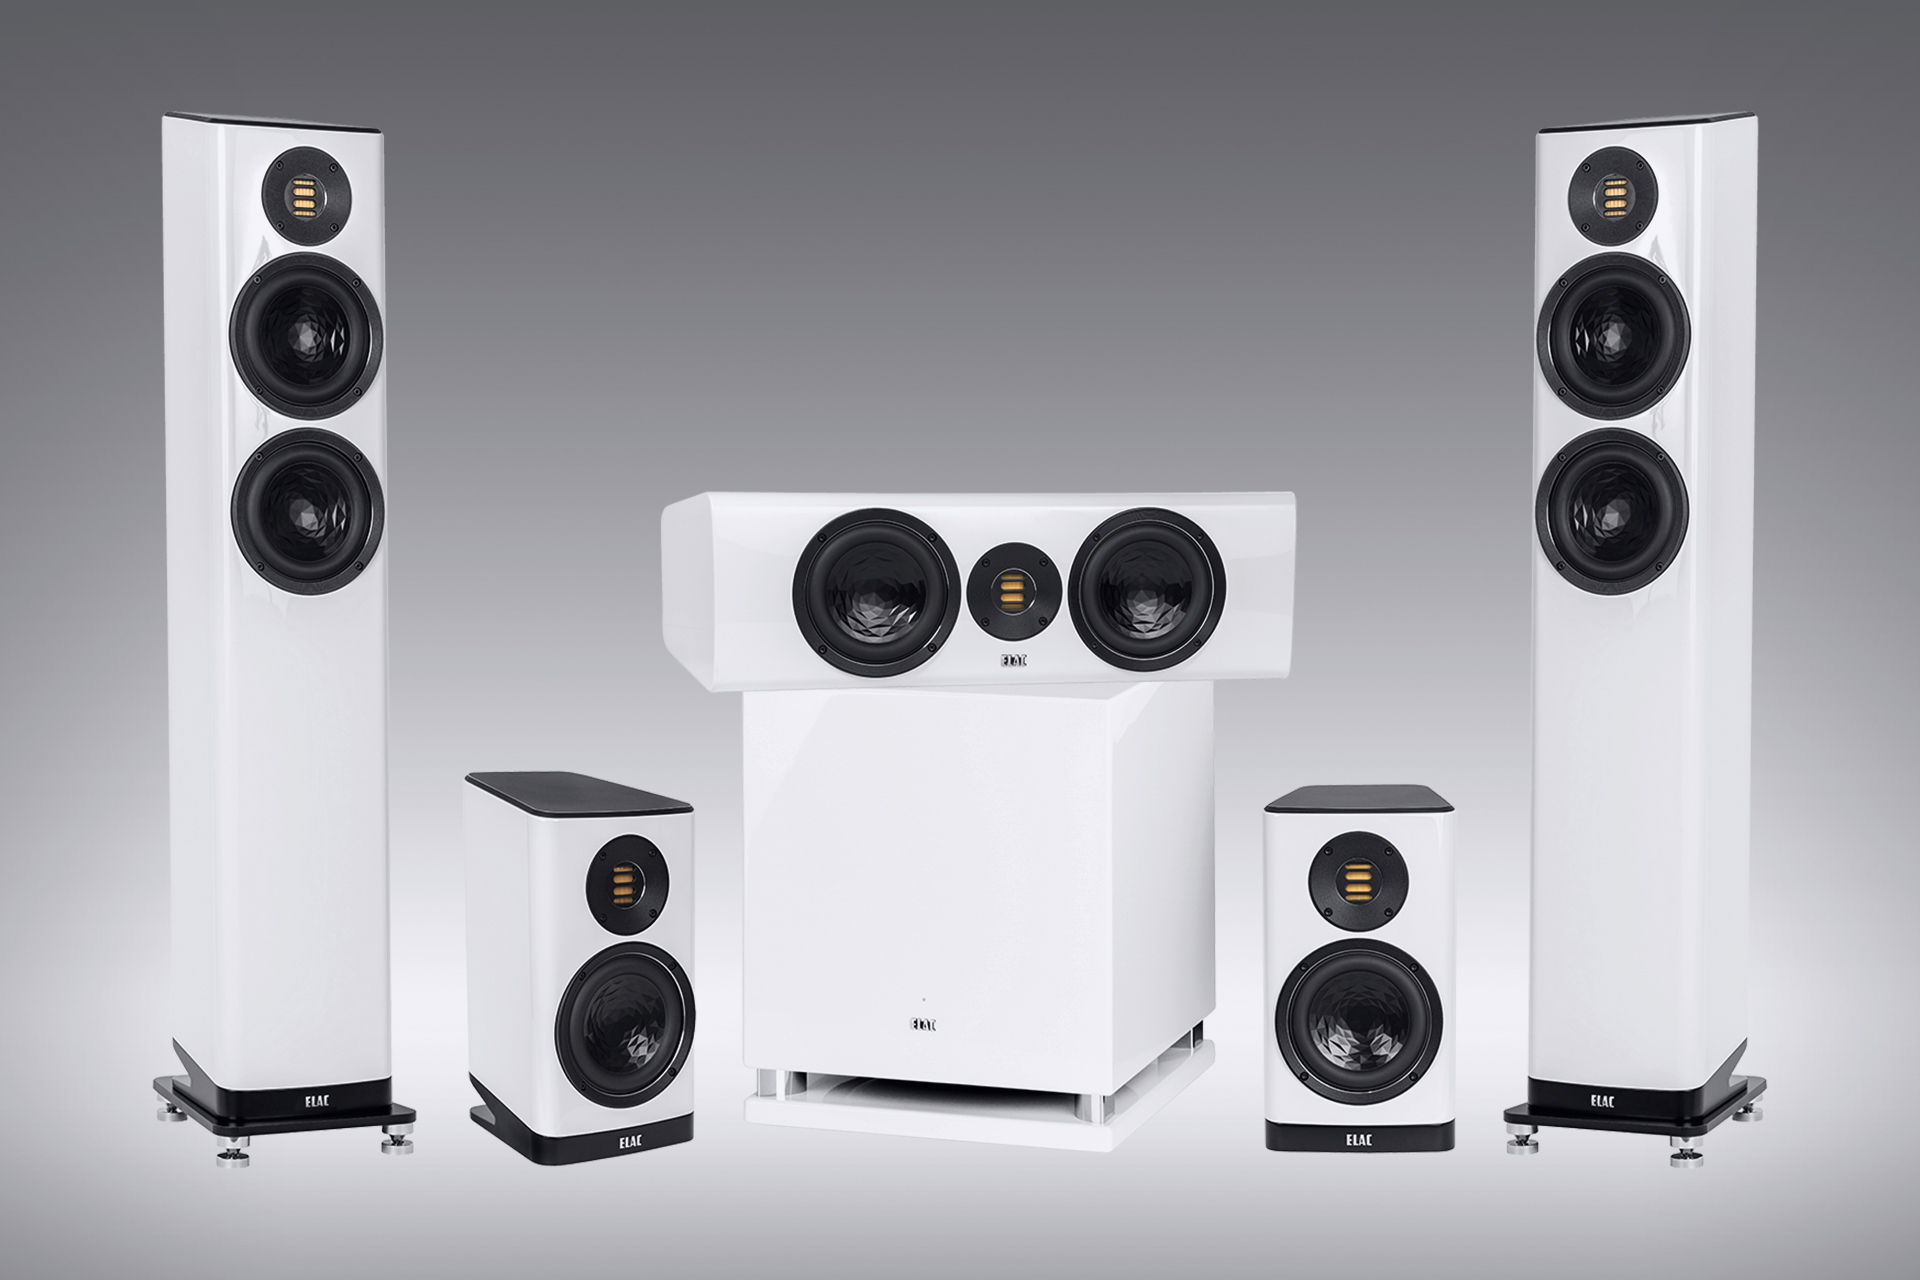 ELAC Vela FS 407 Home Cinema System